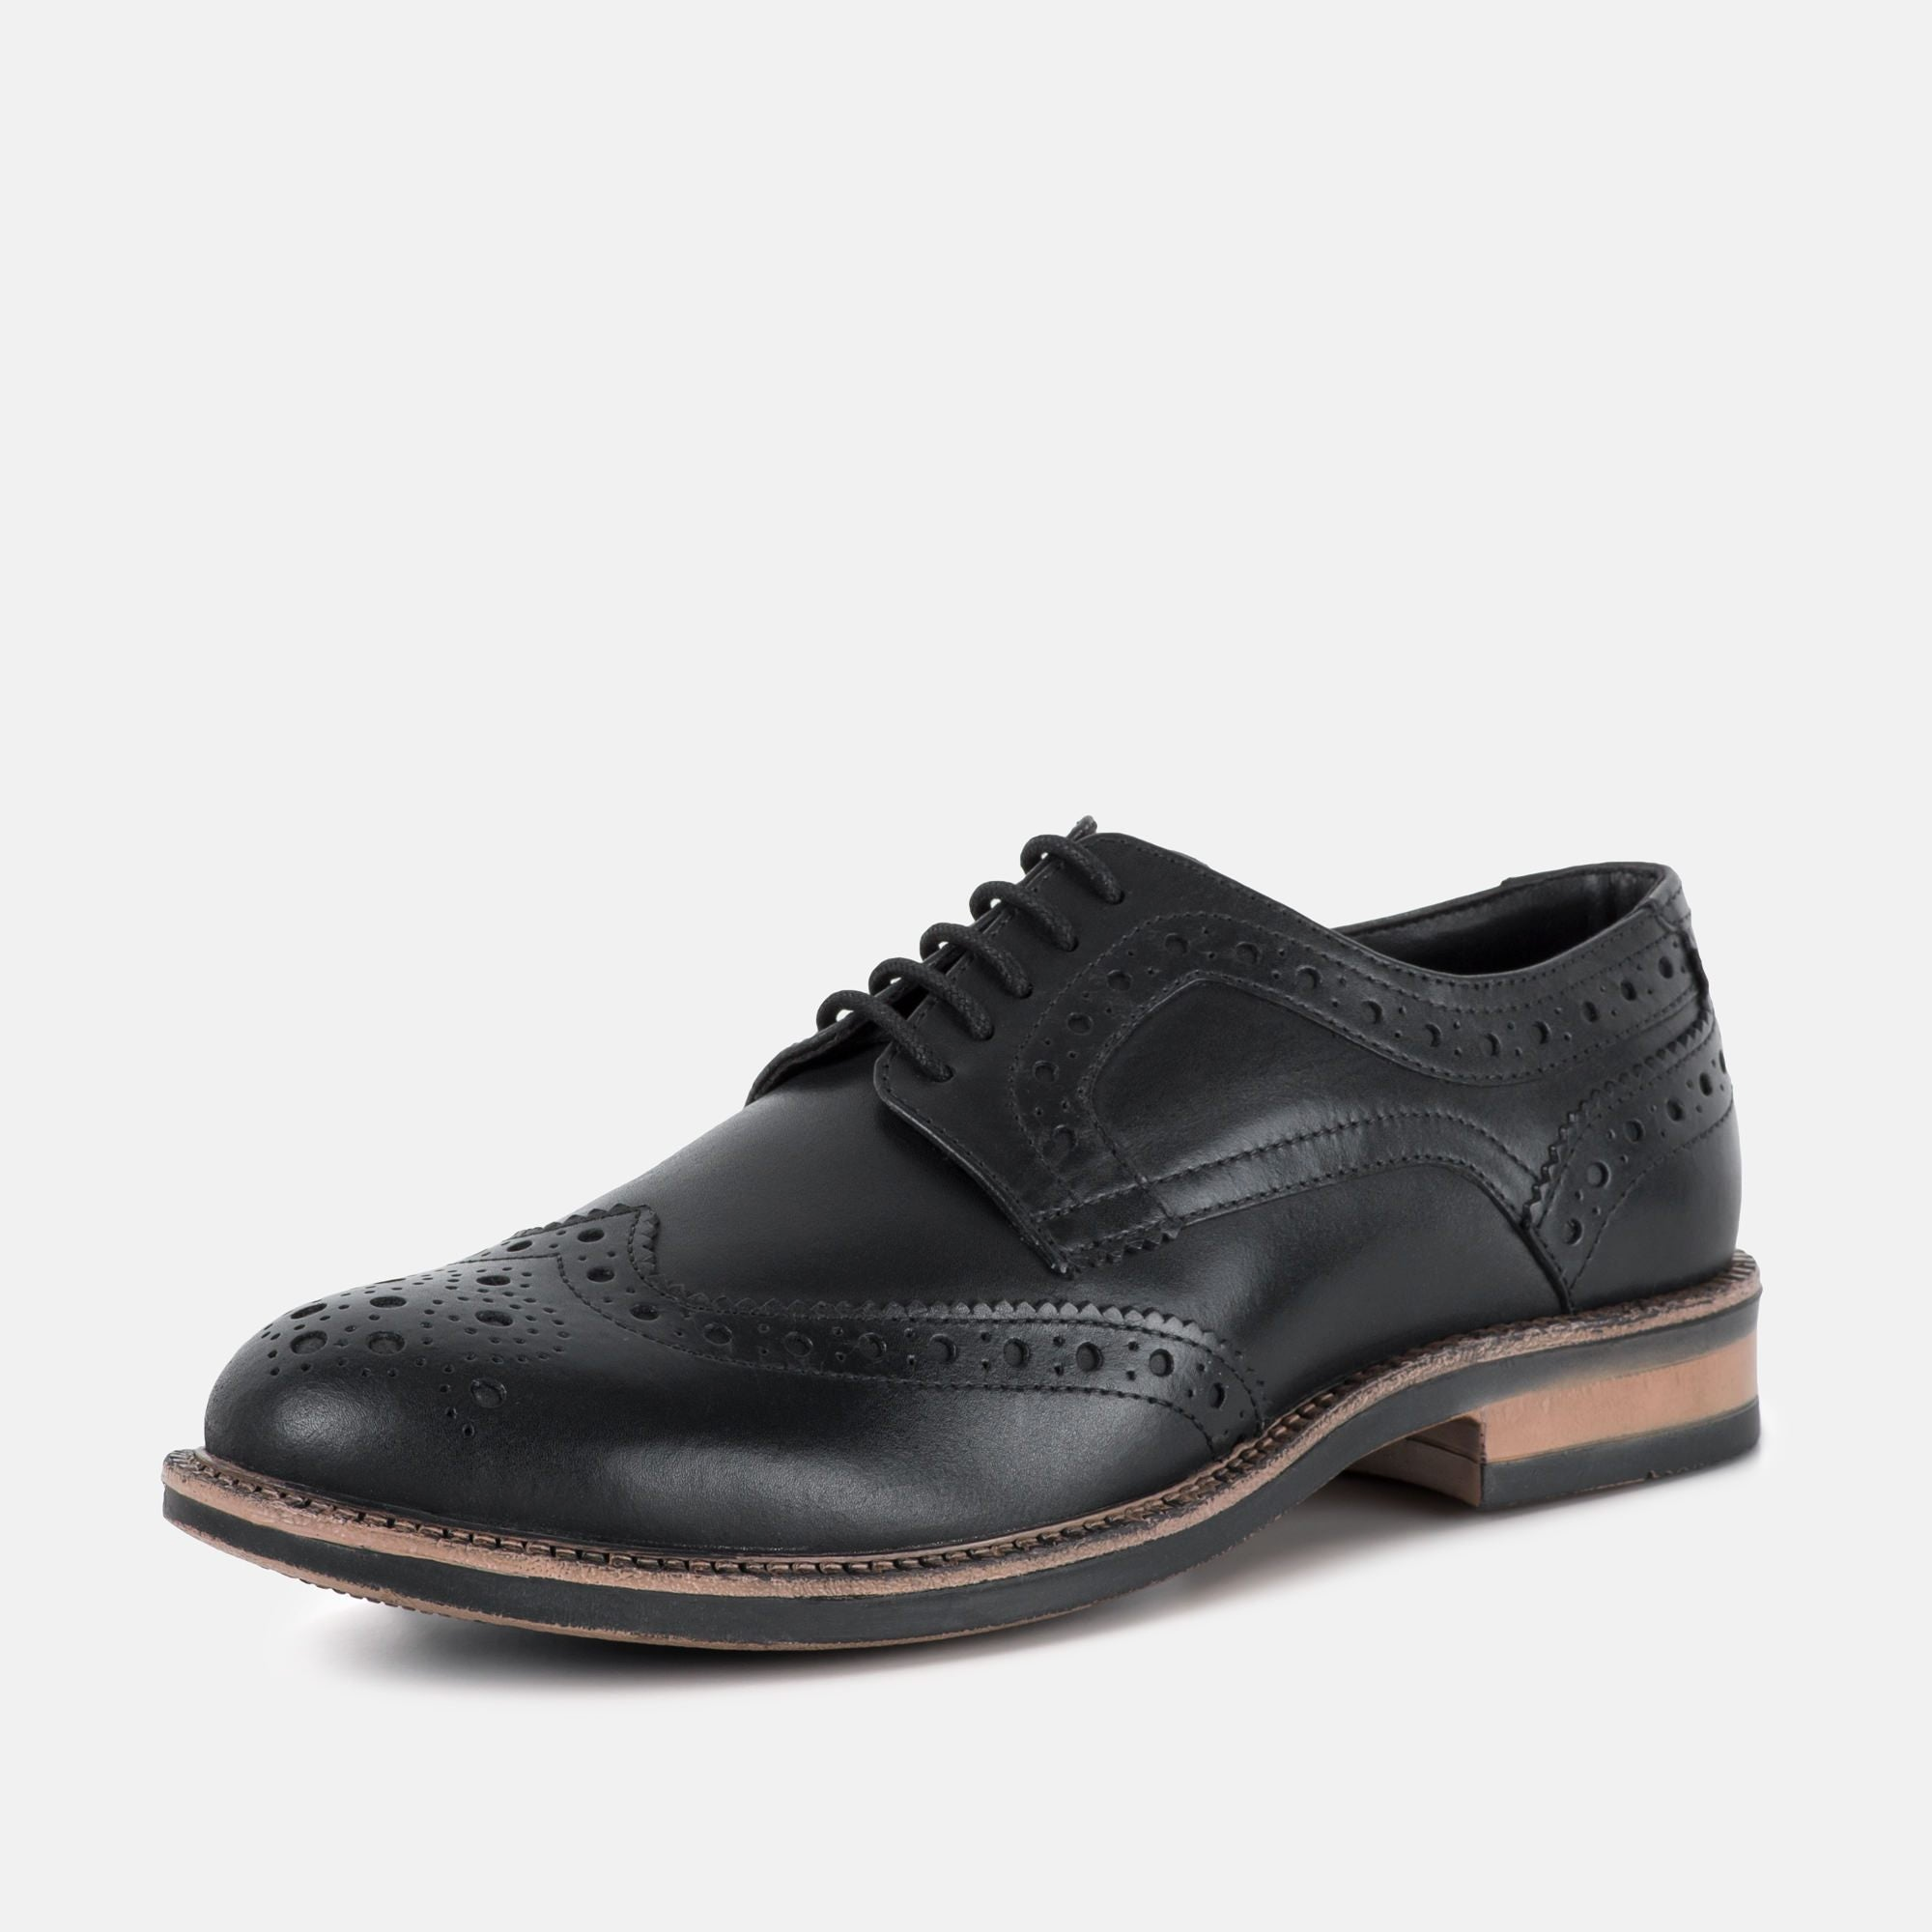 Redfoot Footwear UK 6 / EURO 39 / US 7 / Black / Leather JOHNSON BLACK